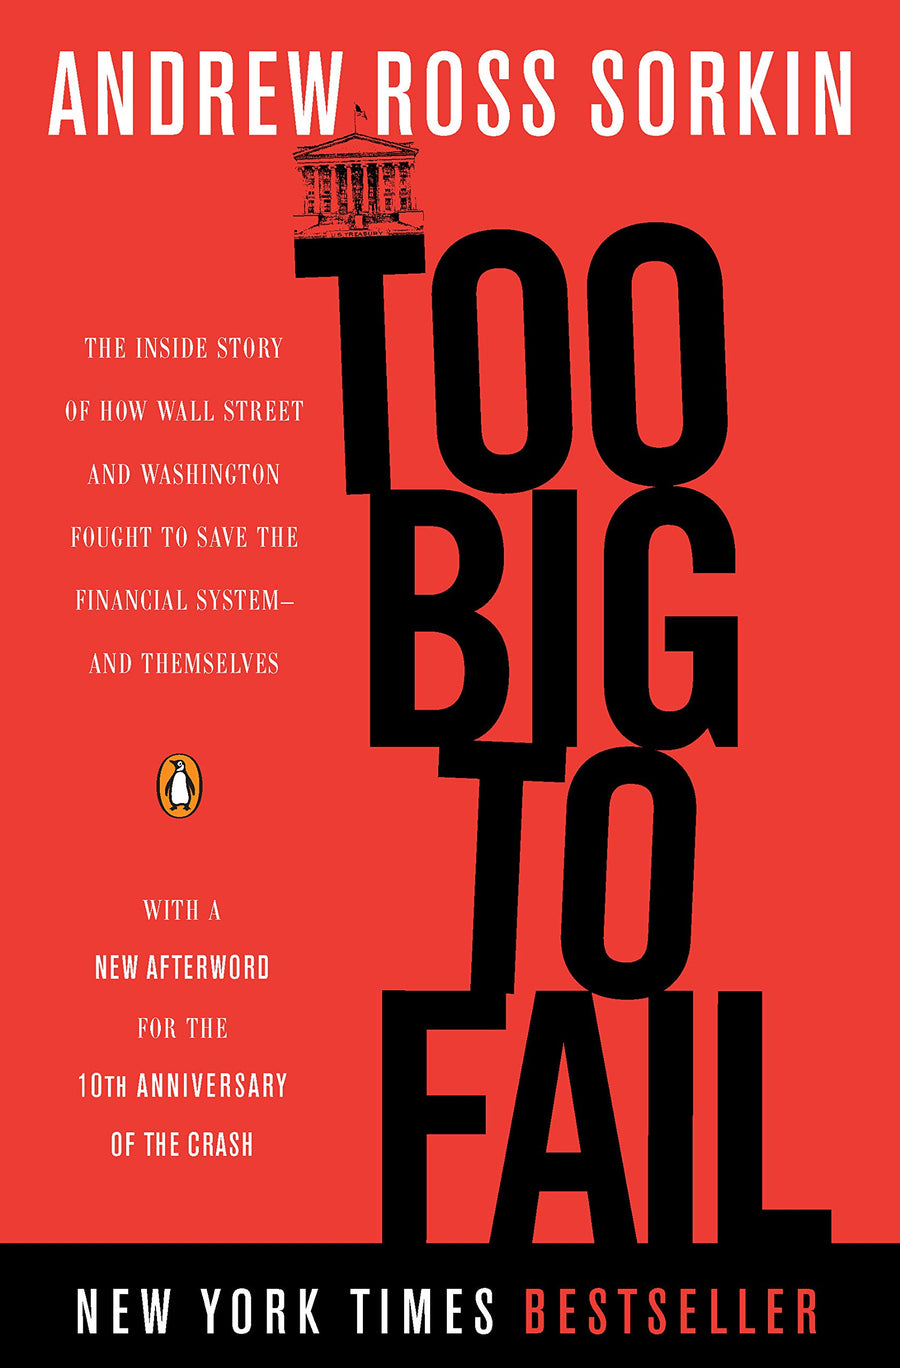 Too Big to Fail: The Inside Story of How Wall Street and Washington Fought to Save the Financial System and Themselves by Andrew Ross Sorkin